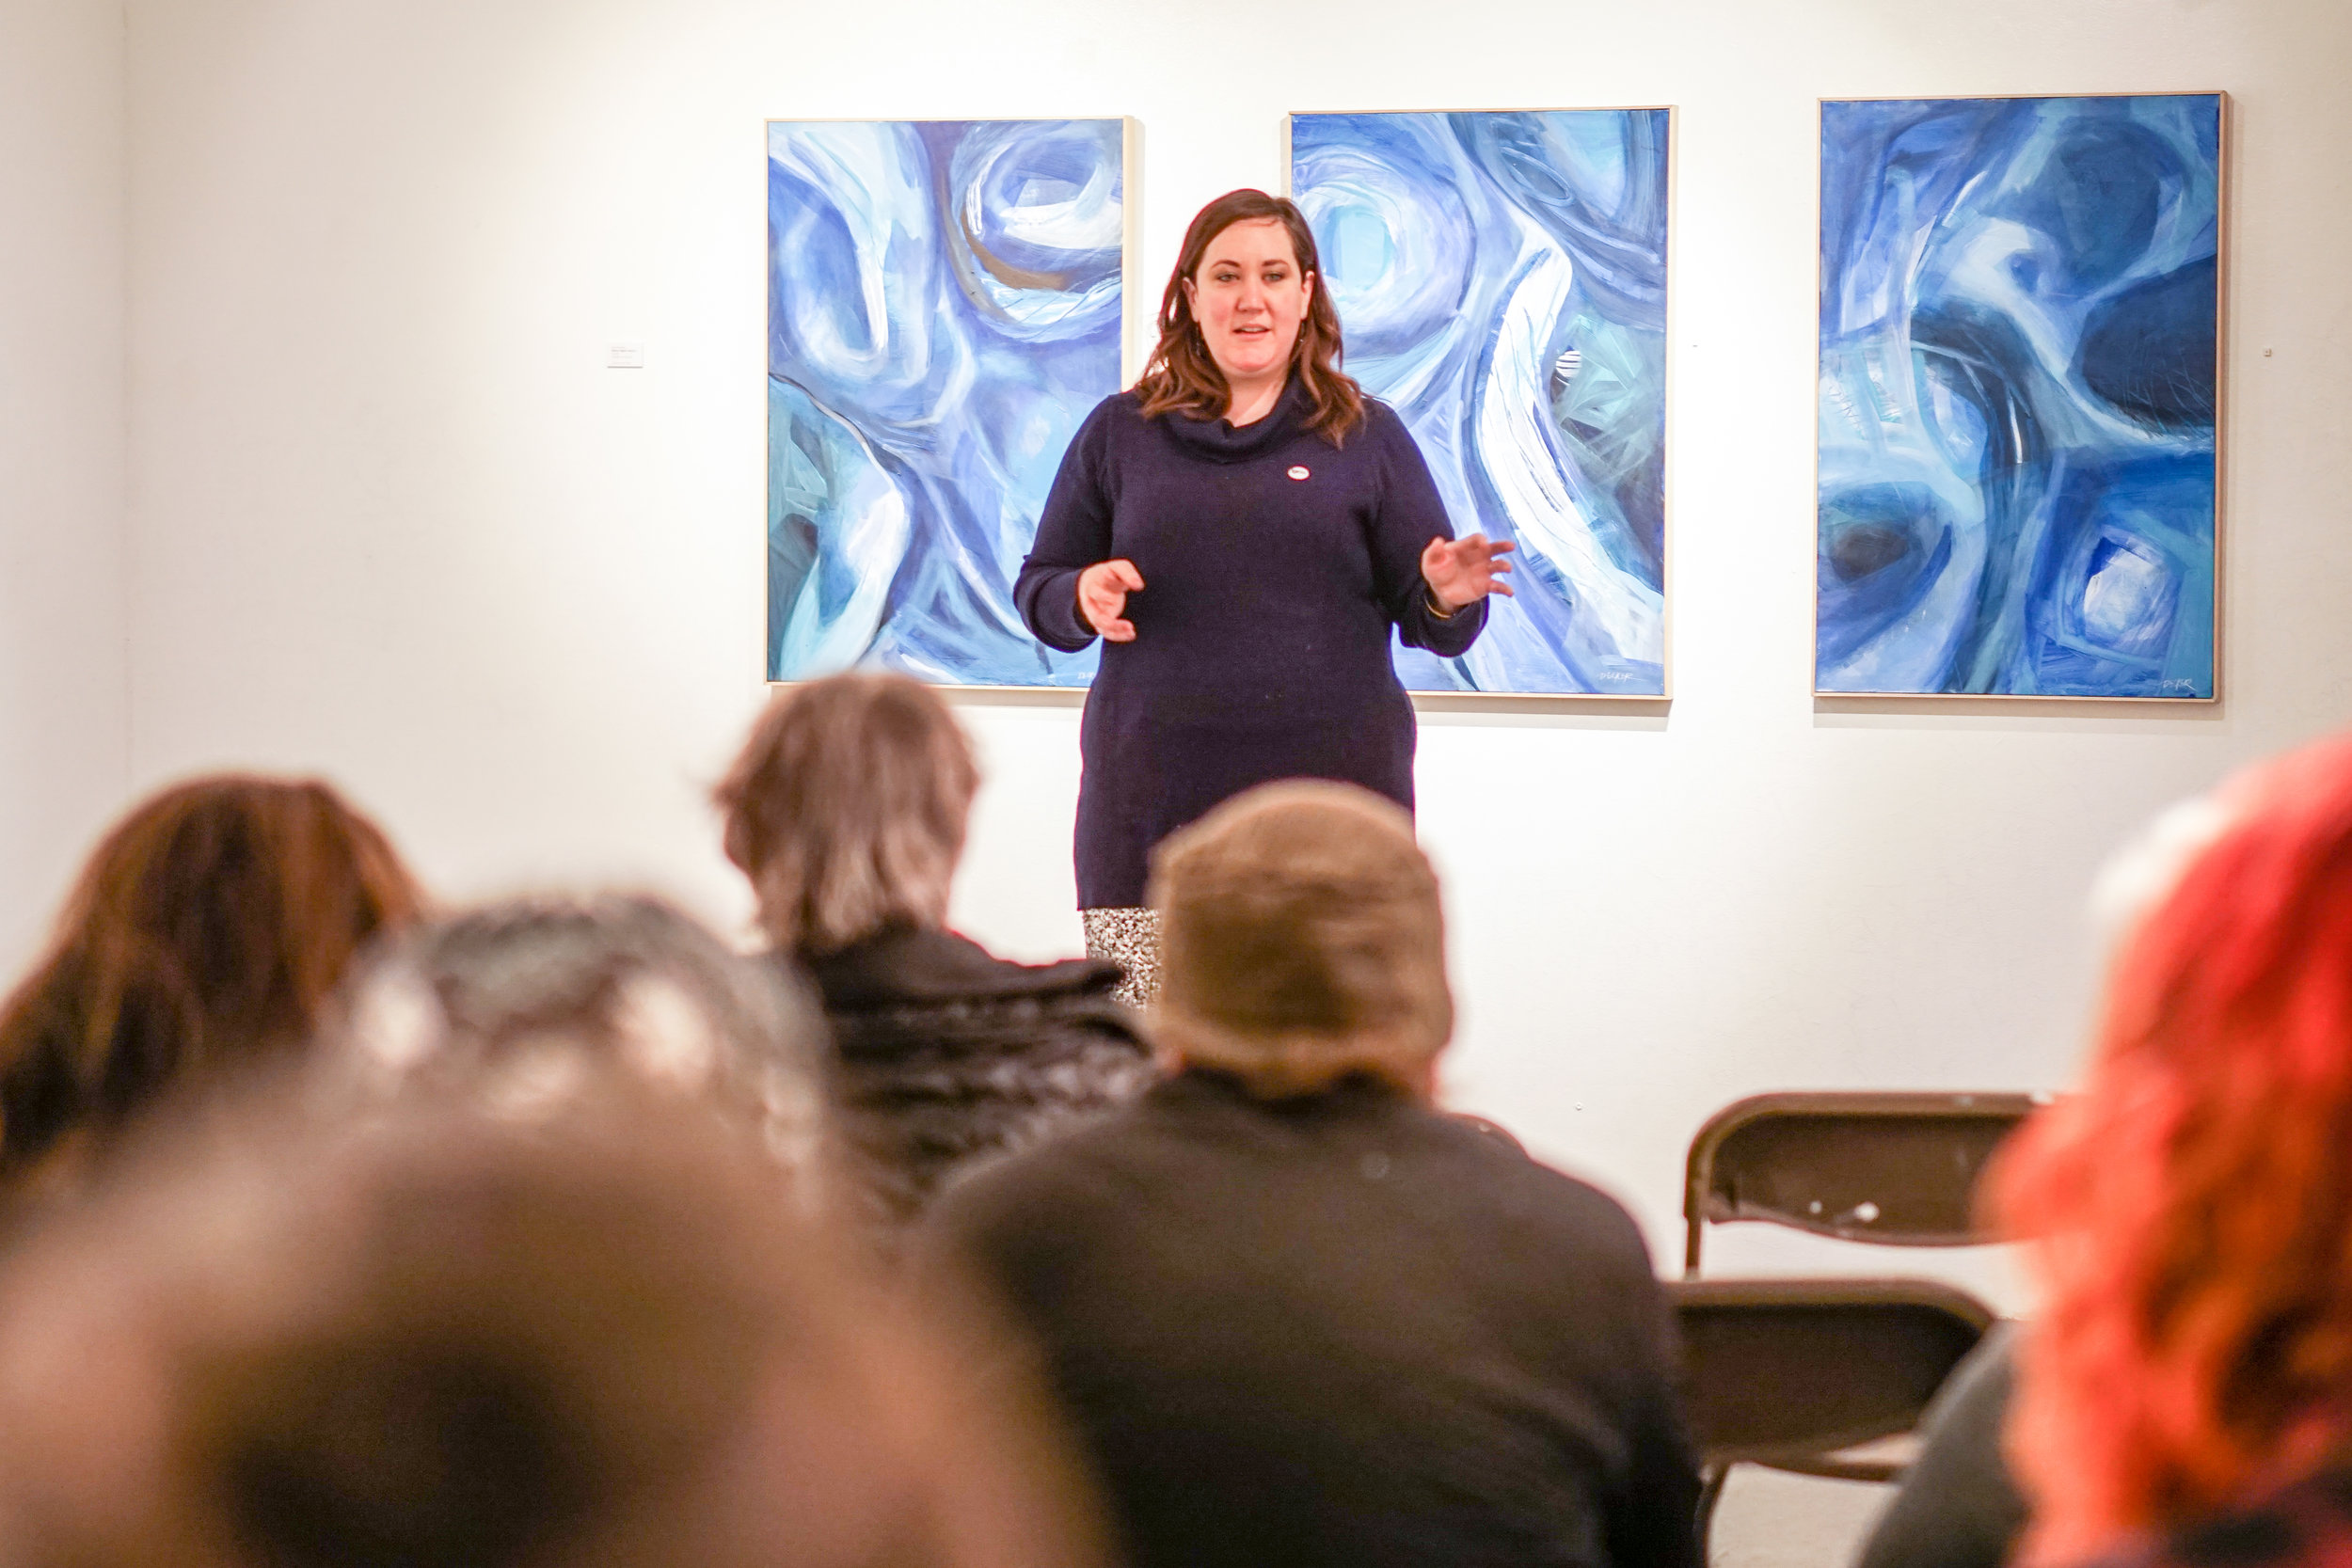 I deliver a curatorial talk in the Center Gallery of the International Gallery of Contemporary Art in Anchorage. As Gallery Manager, I have the opportunity to curate exhibitions, design programming, and educate the public on projects at the gallery.